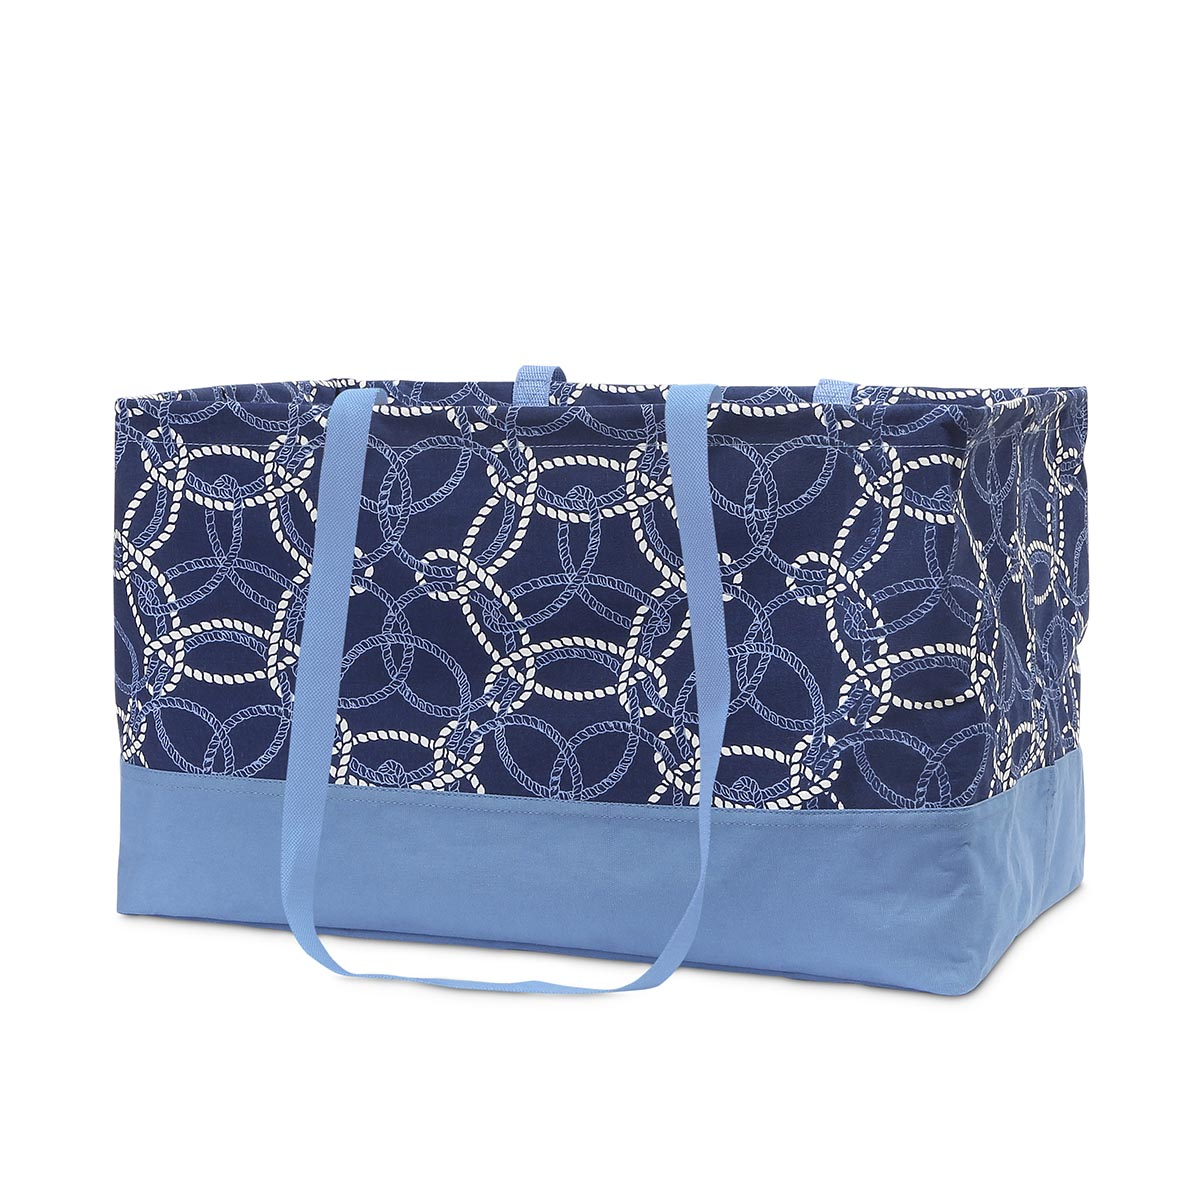 knot-ical rectangle storage tote